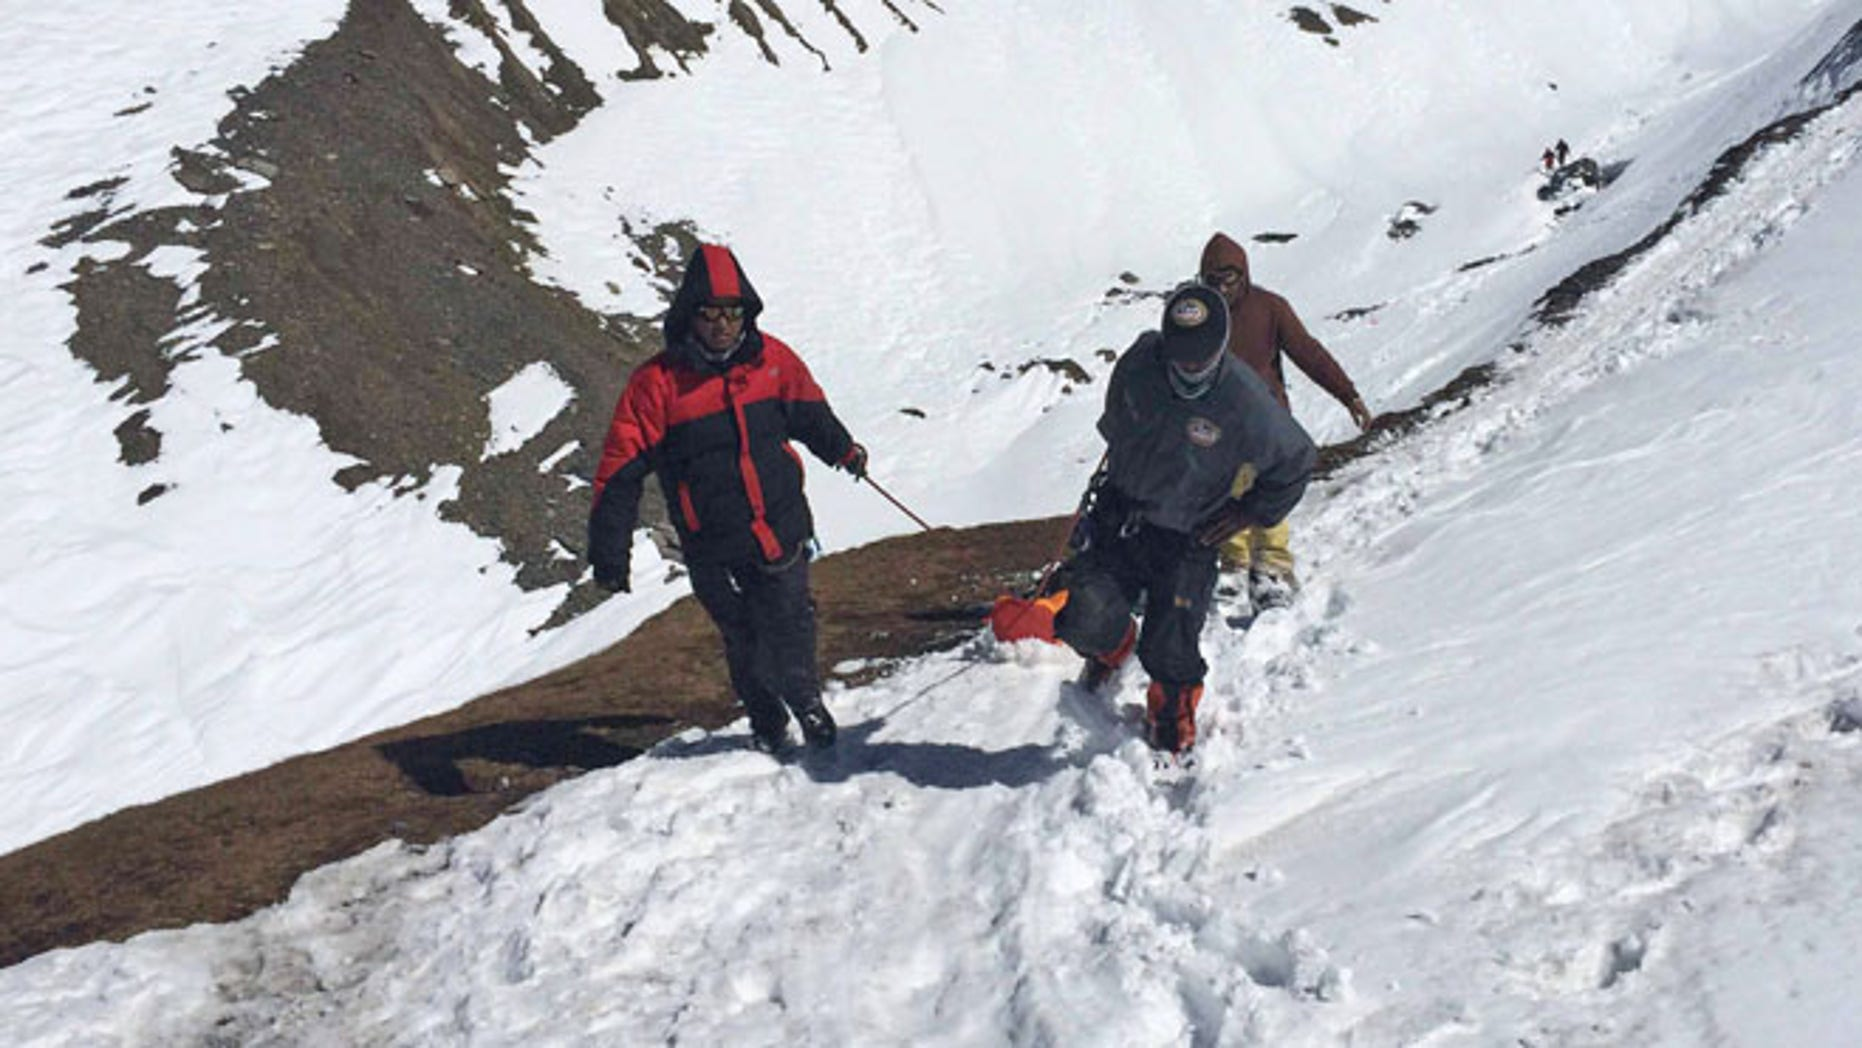 Oct. 17, 2014: In this handout photo provided by the Nepalese army, rescue team members carry the body of an avalanche victim at Thorong La pass area in Nepal